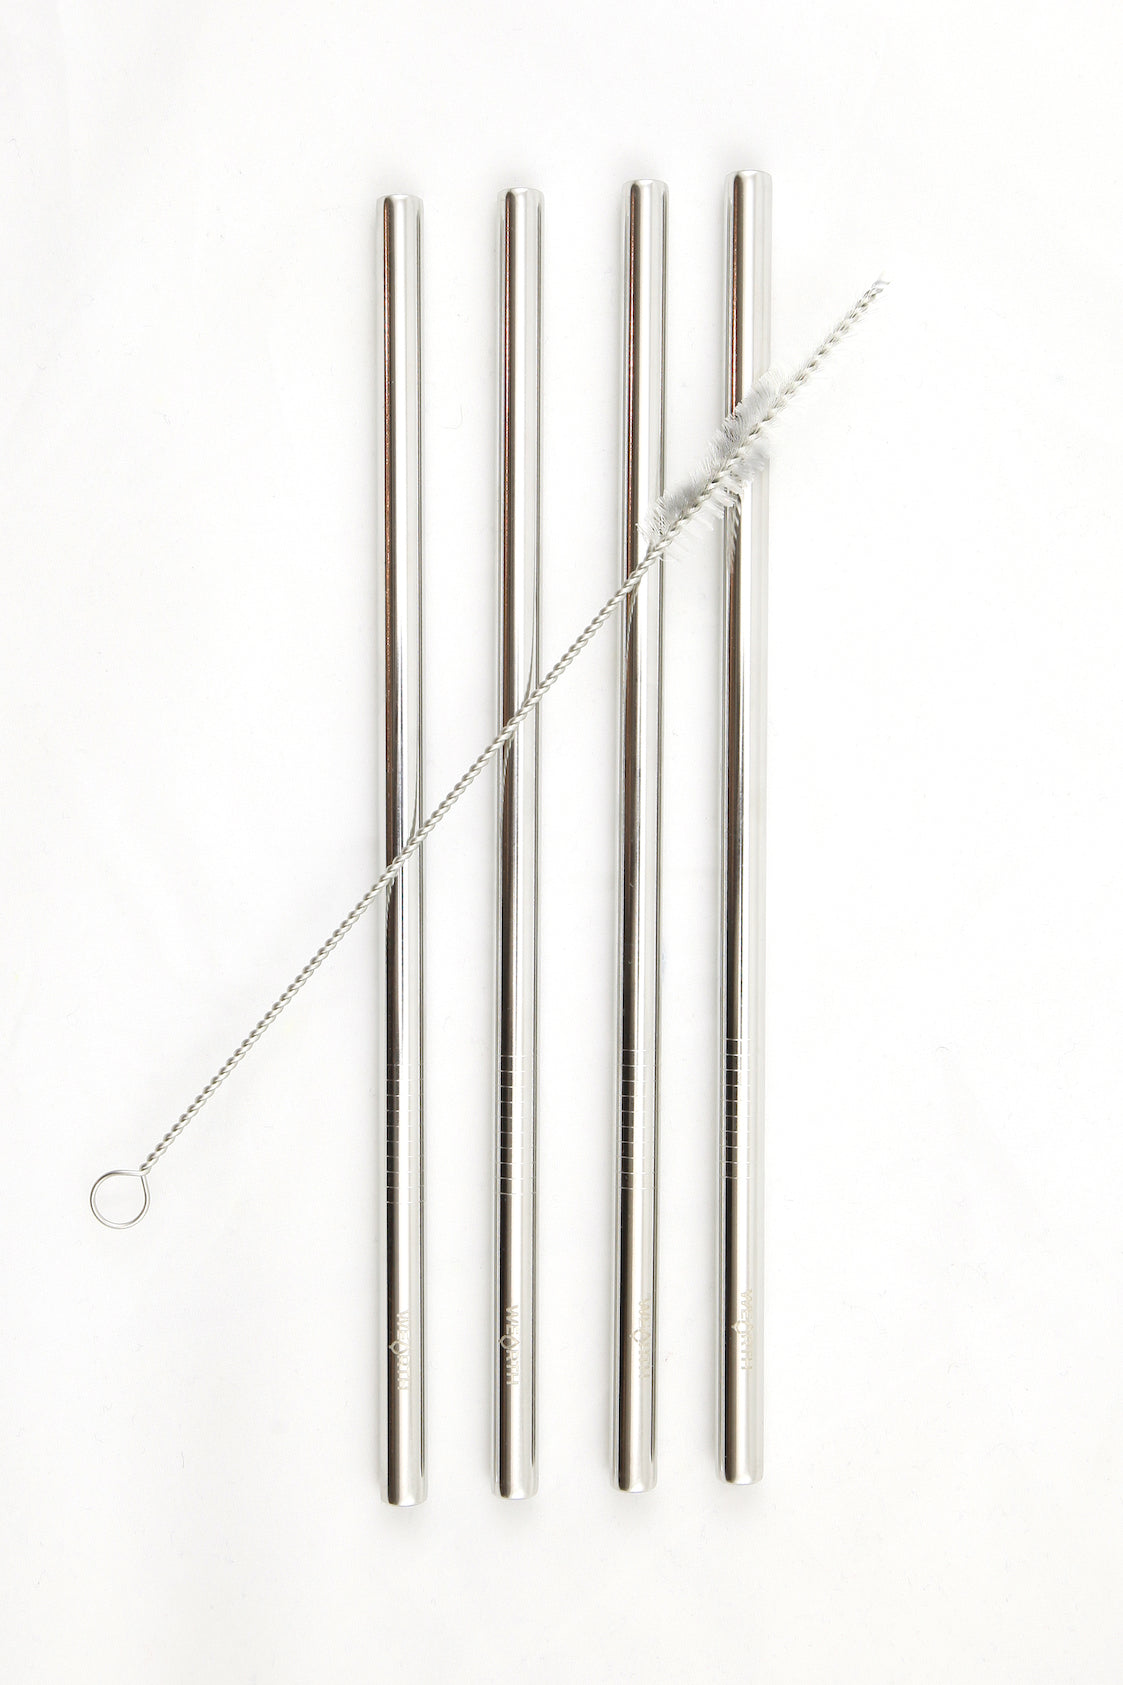 Wearth | Wearth stainless steel straw straight- 4pack + brush | Plastic Free Living | Environmentally Friendly Homewares